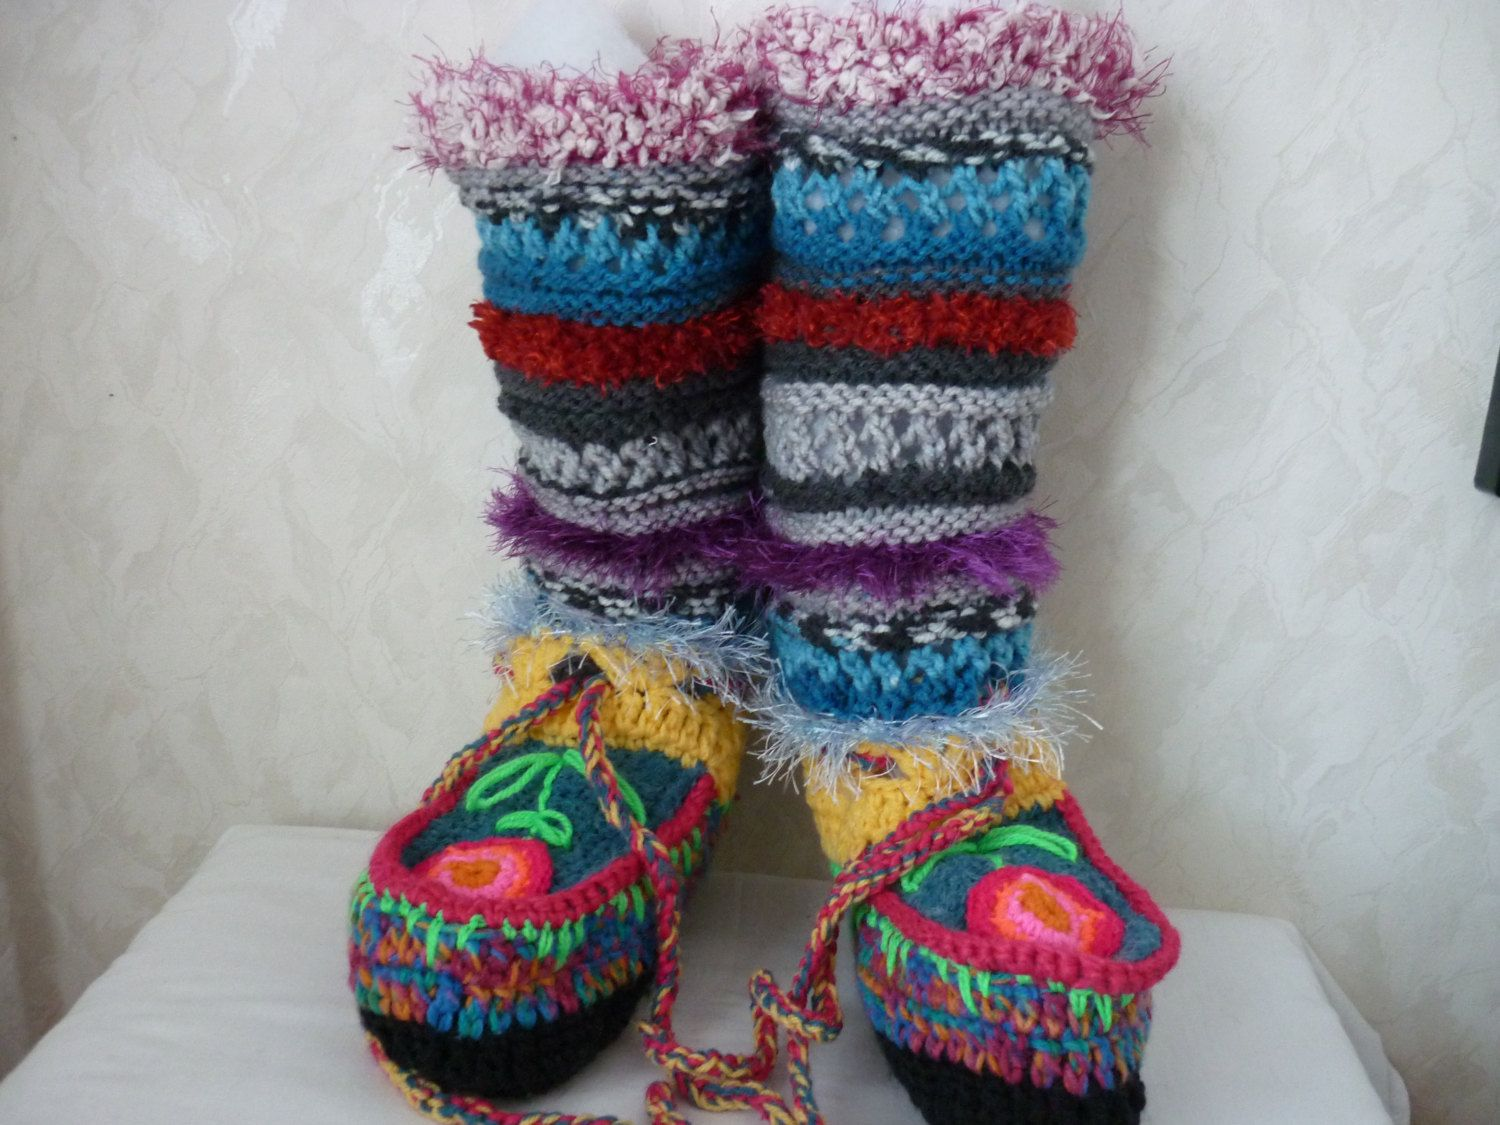 crochet slippers on leather sole pattern - Google Search | feet ...